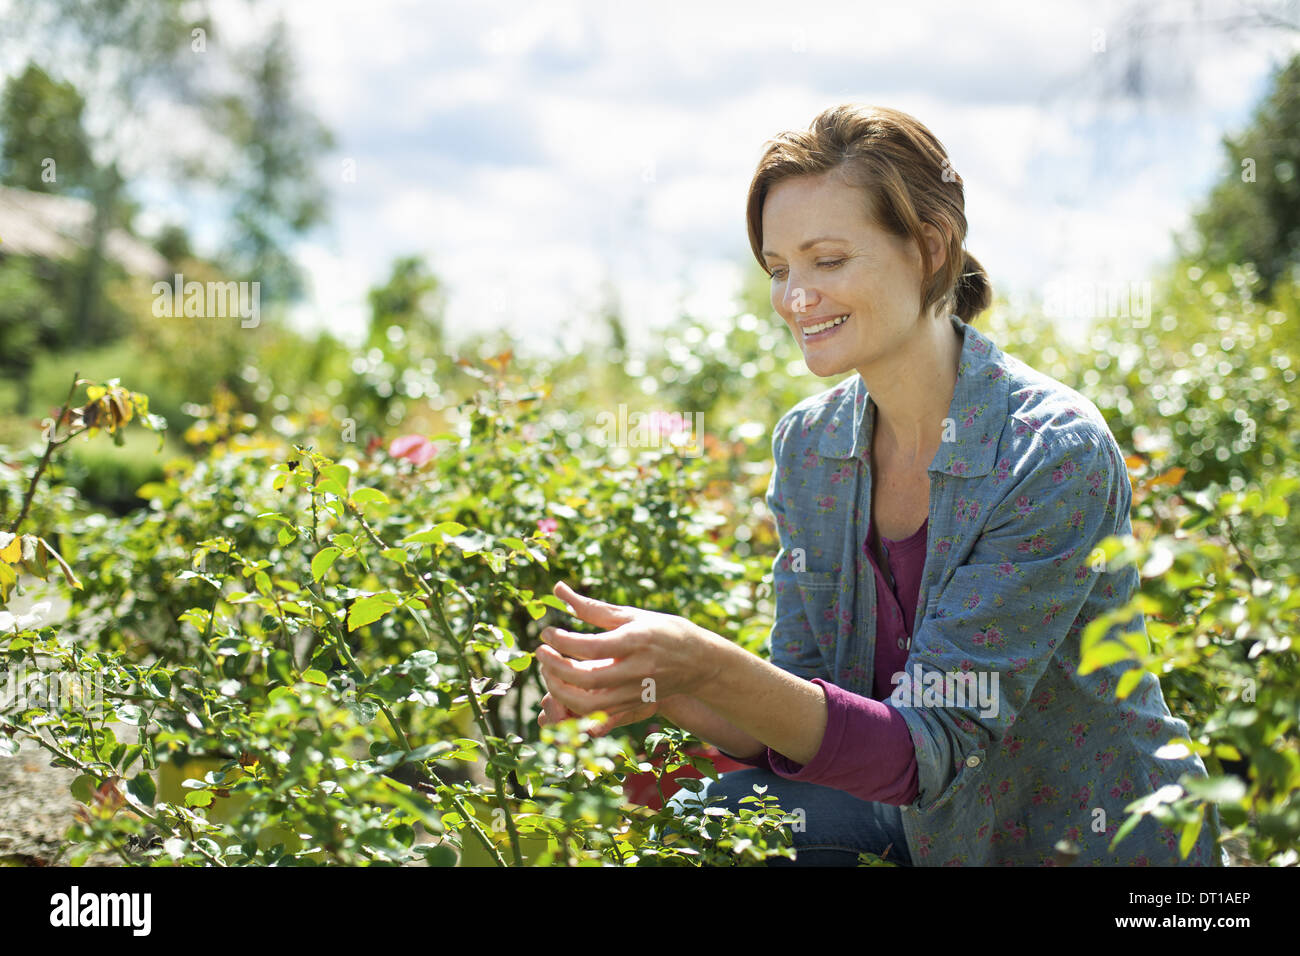 Woodstock New York USA woman in blue shirt work organic farm glasshouse - Stock Image